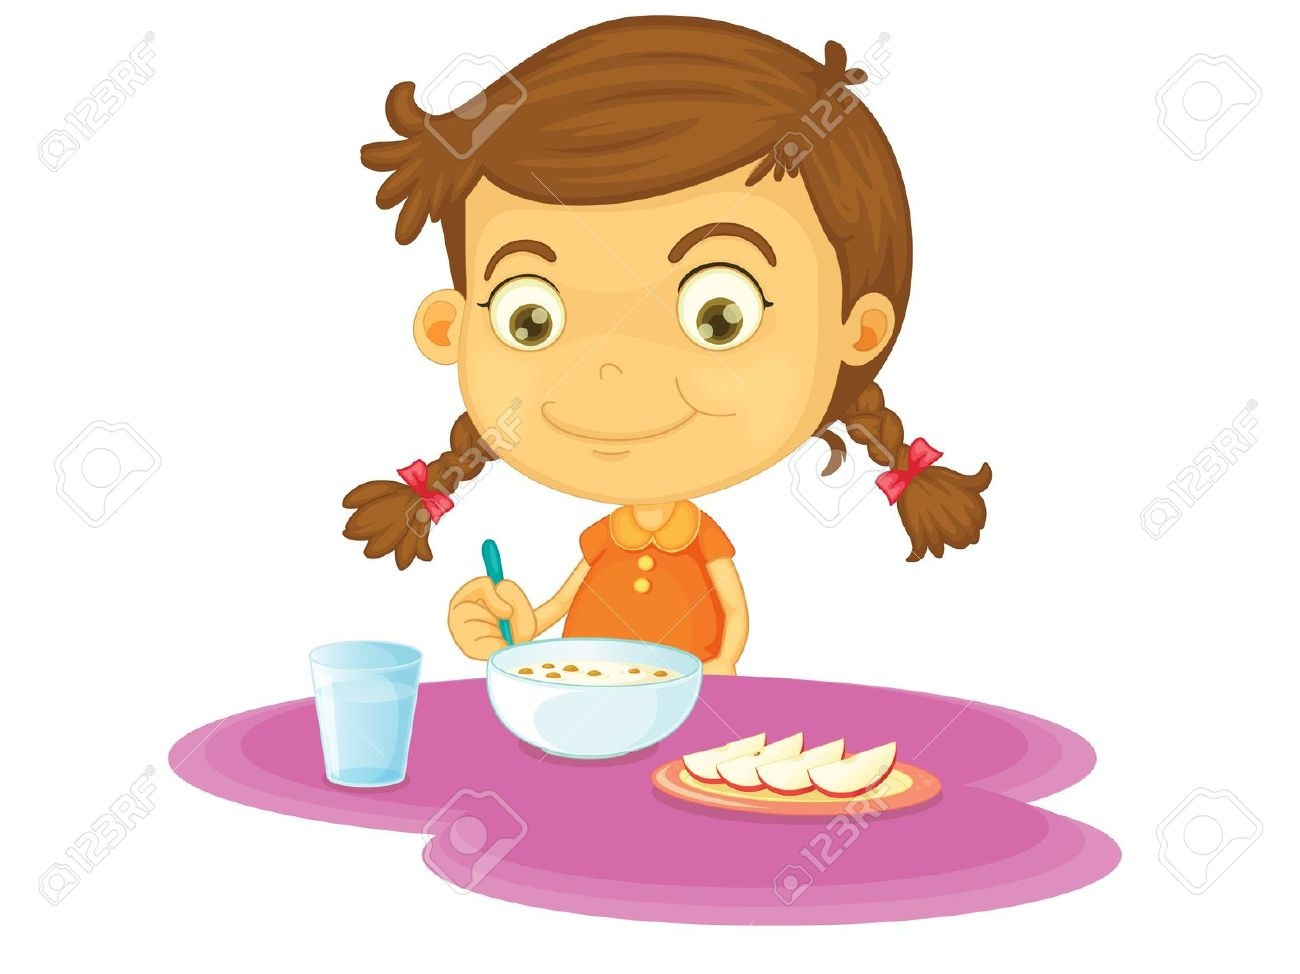 Kids Eating Healthy Clipart .